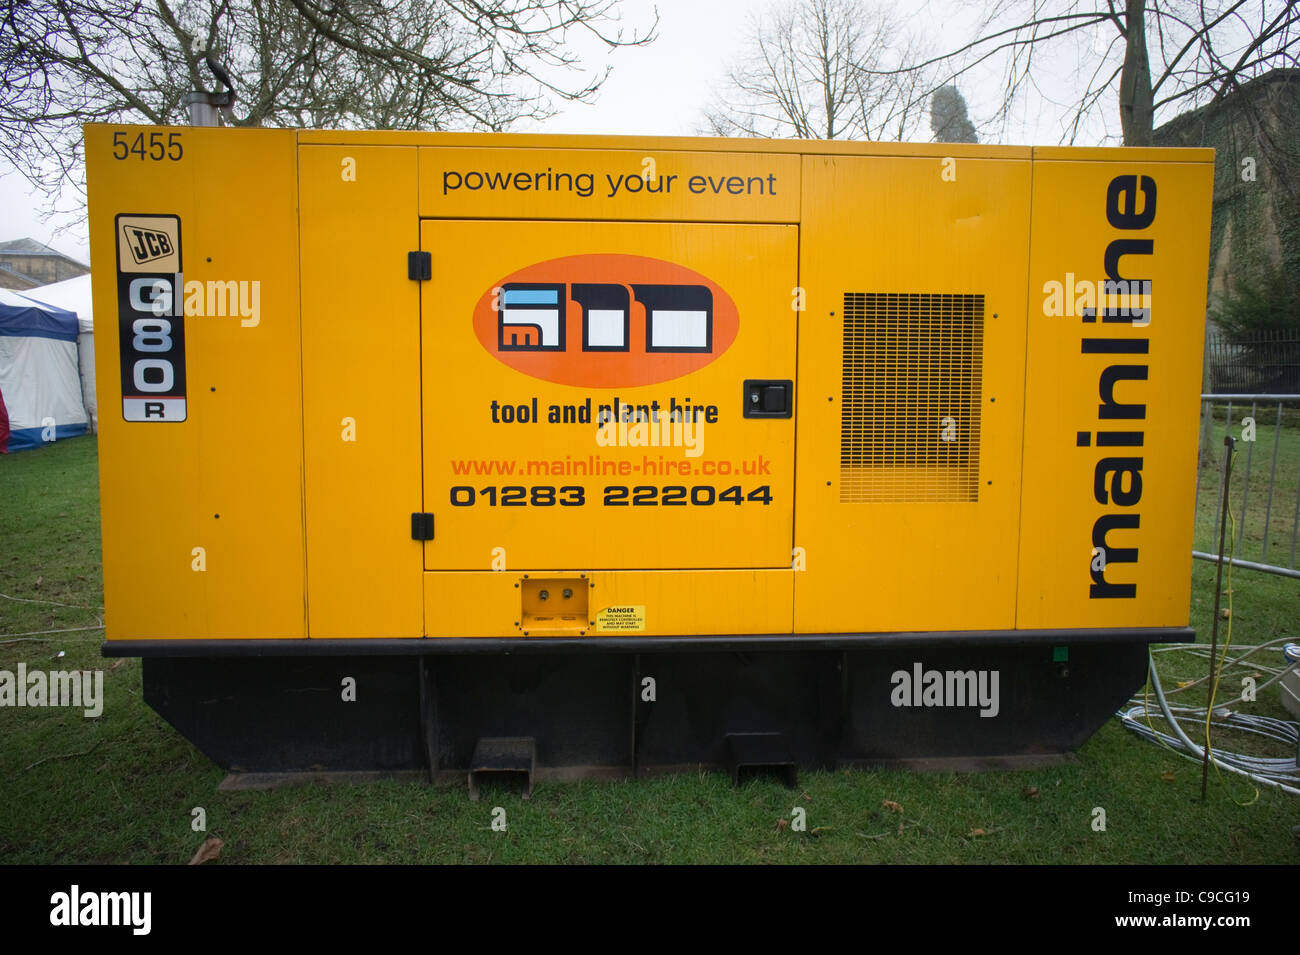 Mainline tool and power hire generator - Stock Image